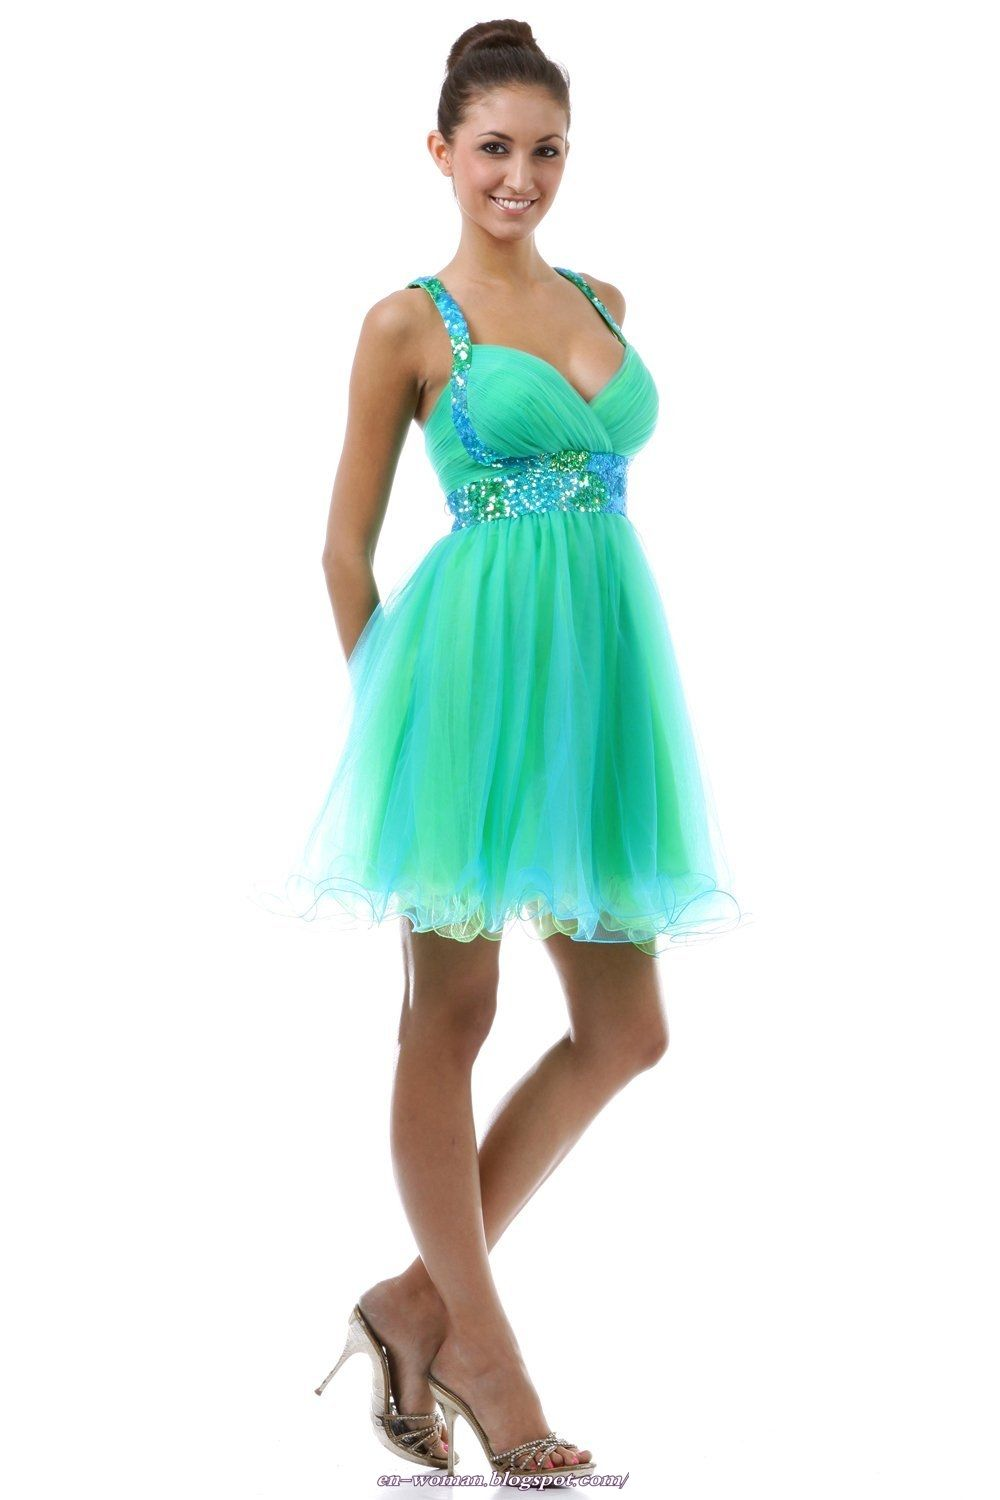 Dressesforteens Dresses For Teens 2011 Party Dresses 2011